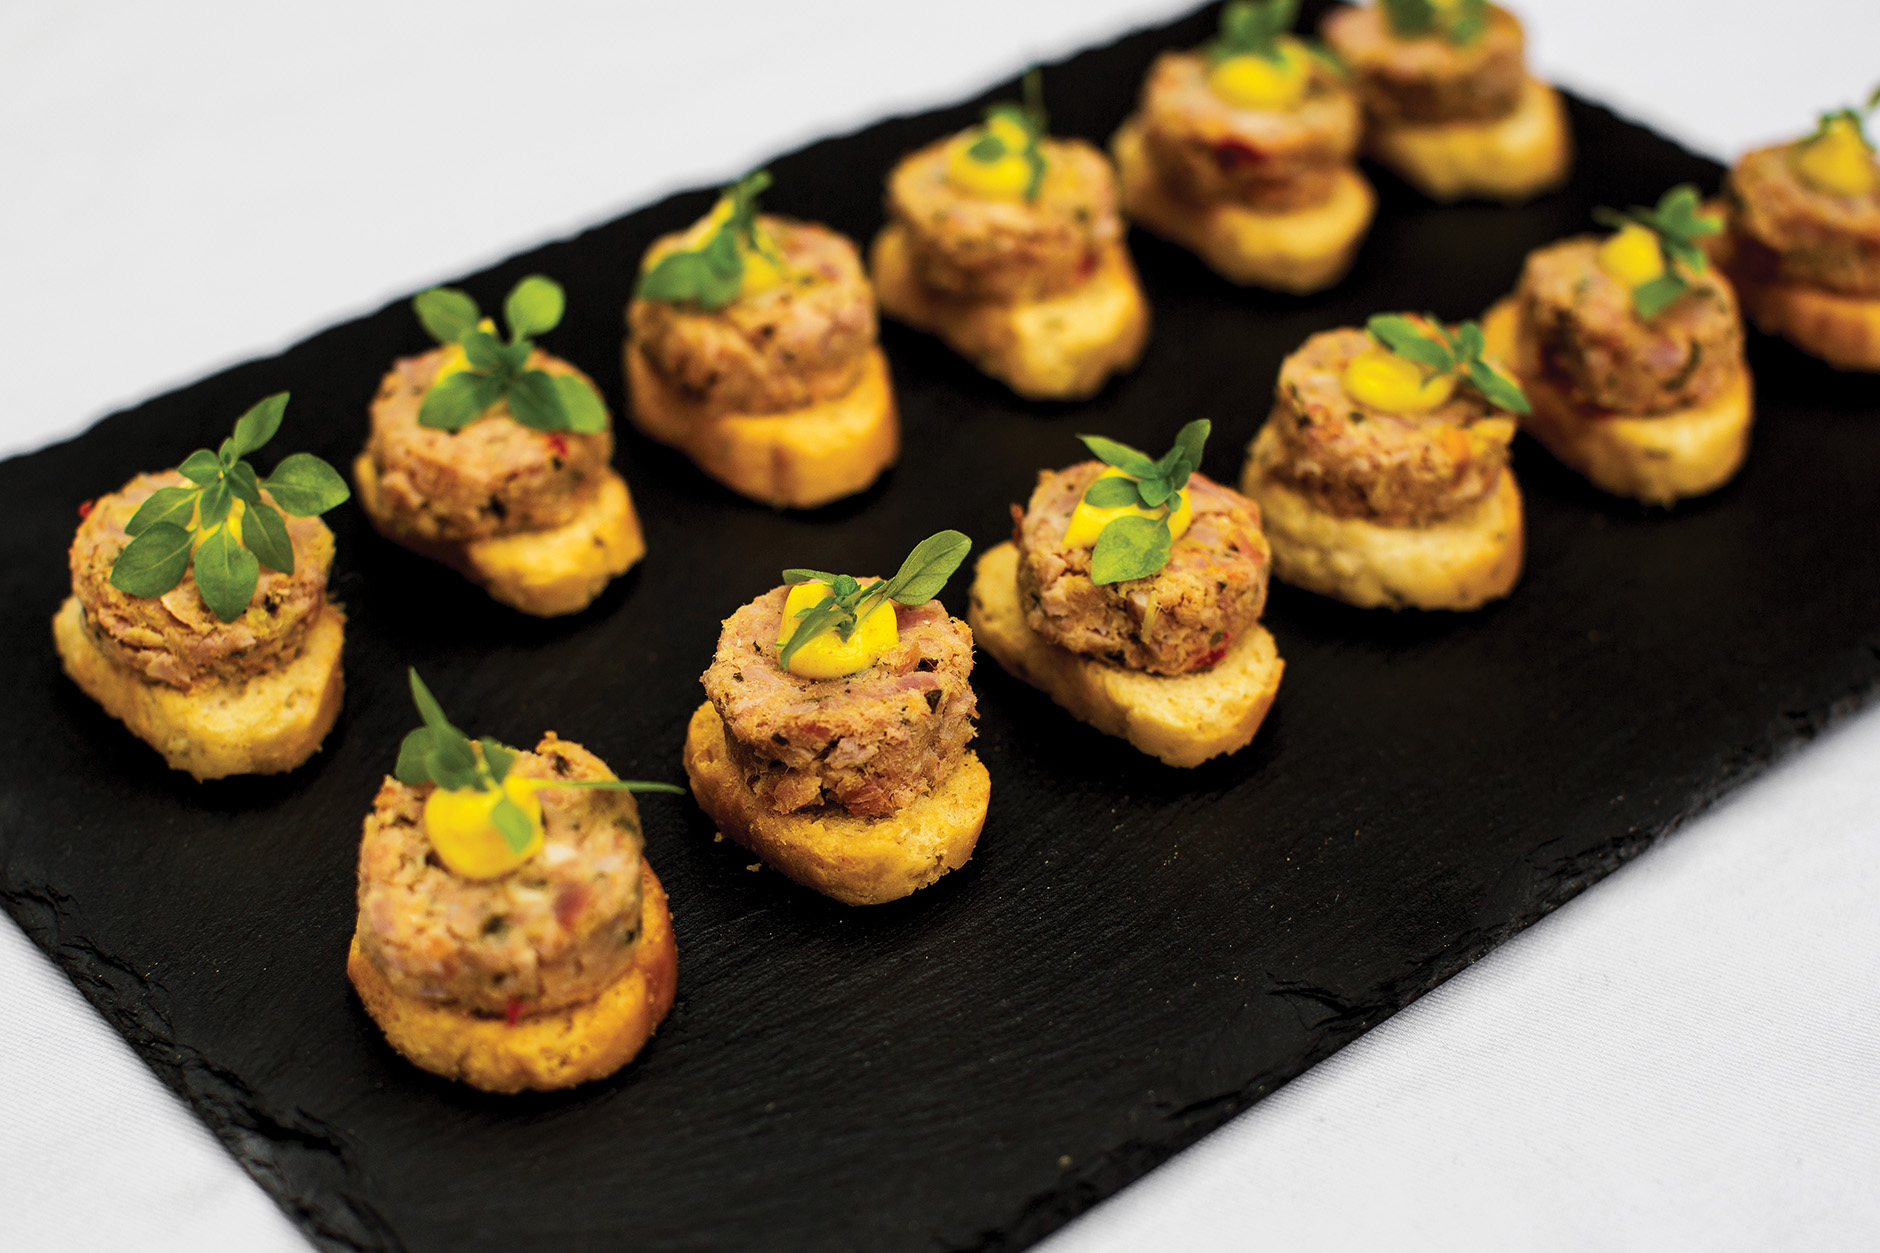 Canapee A Guide To Canapés Sj Events